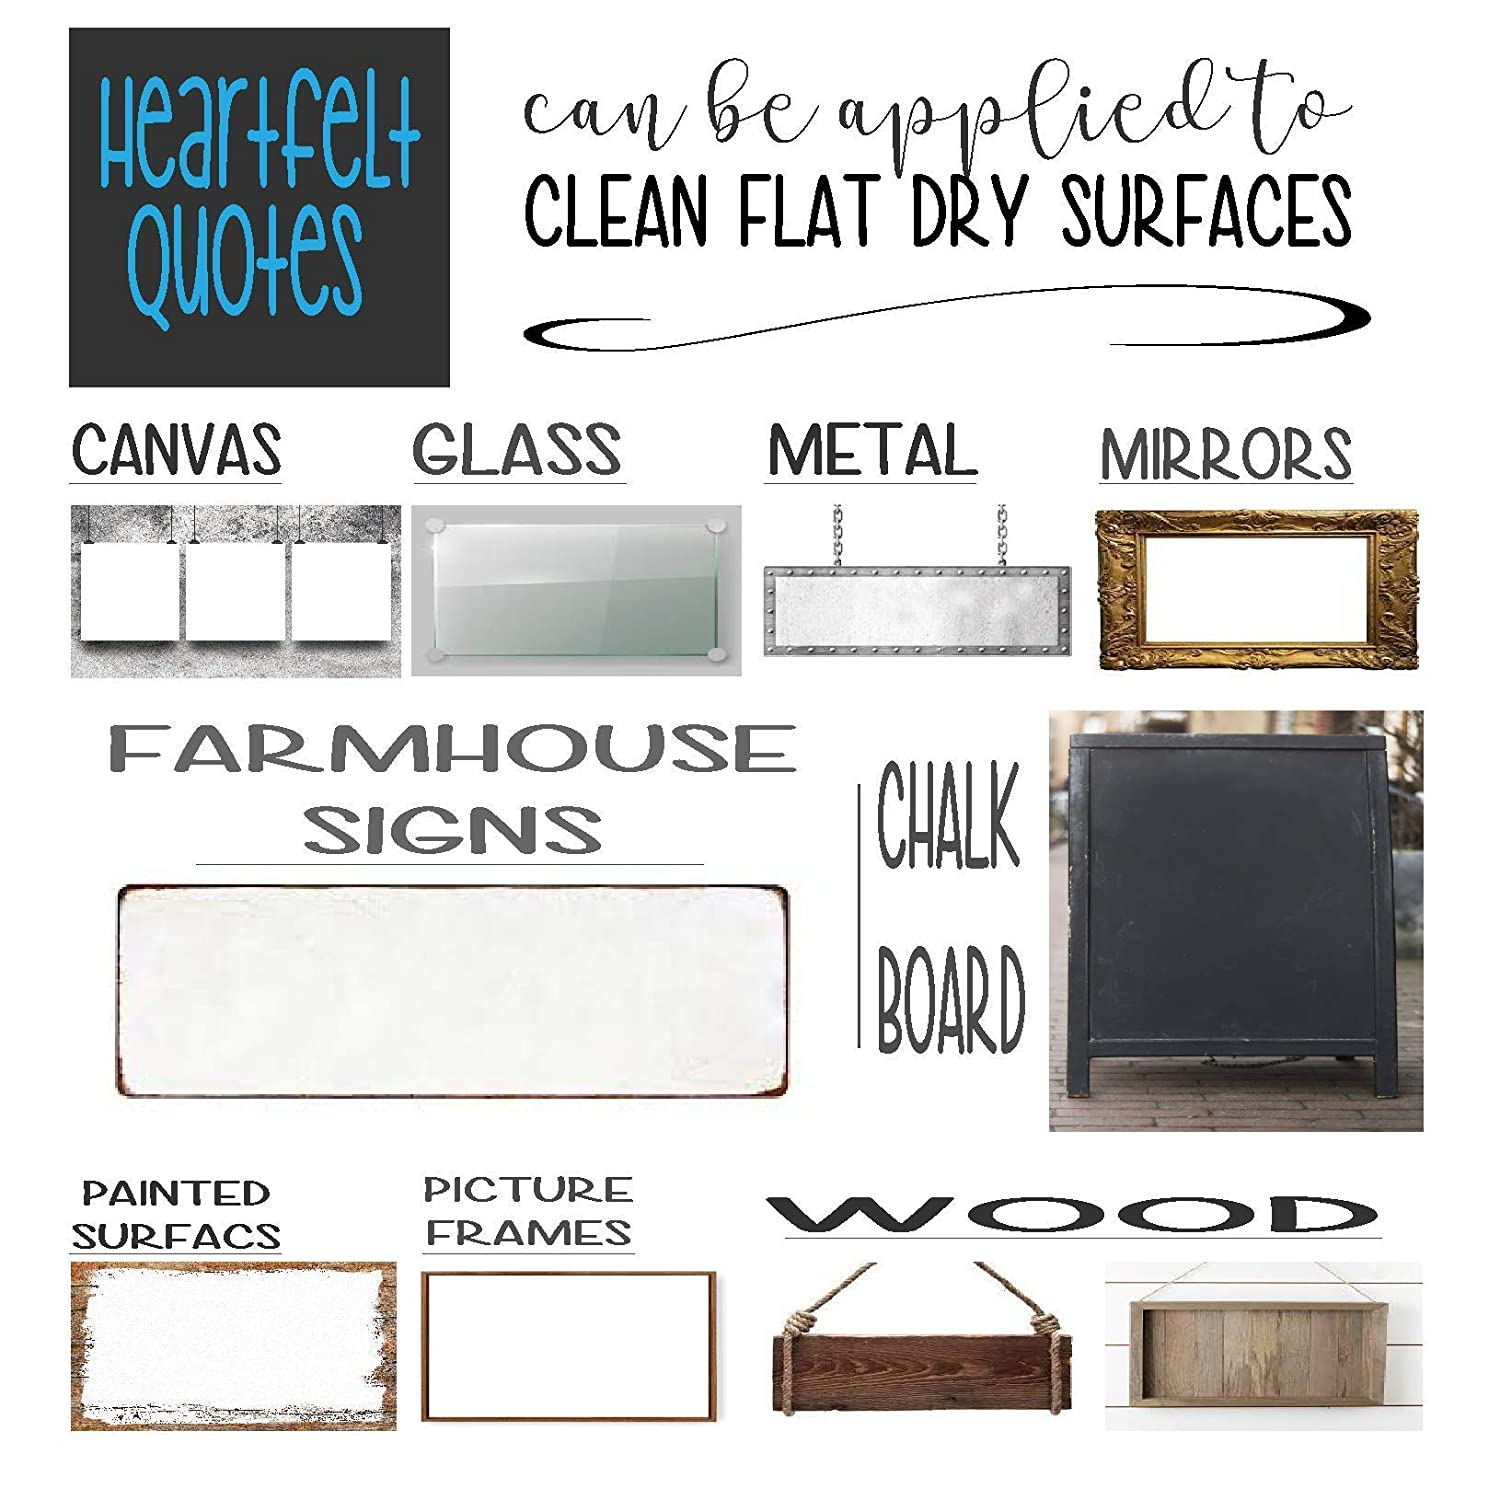 Vinyl Graphic Decal Sticker Can be Used for Vehicle Window Cooler Mirror Safe || High Quality Outdoor Rated Vinyl || 3 Sizes Available Canvas Metal or Framed Sign Sized for Farmhouse Farm Life